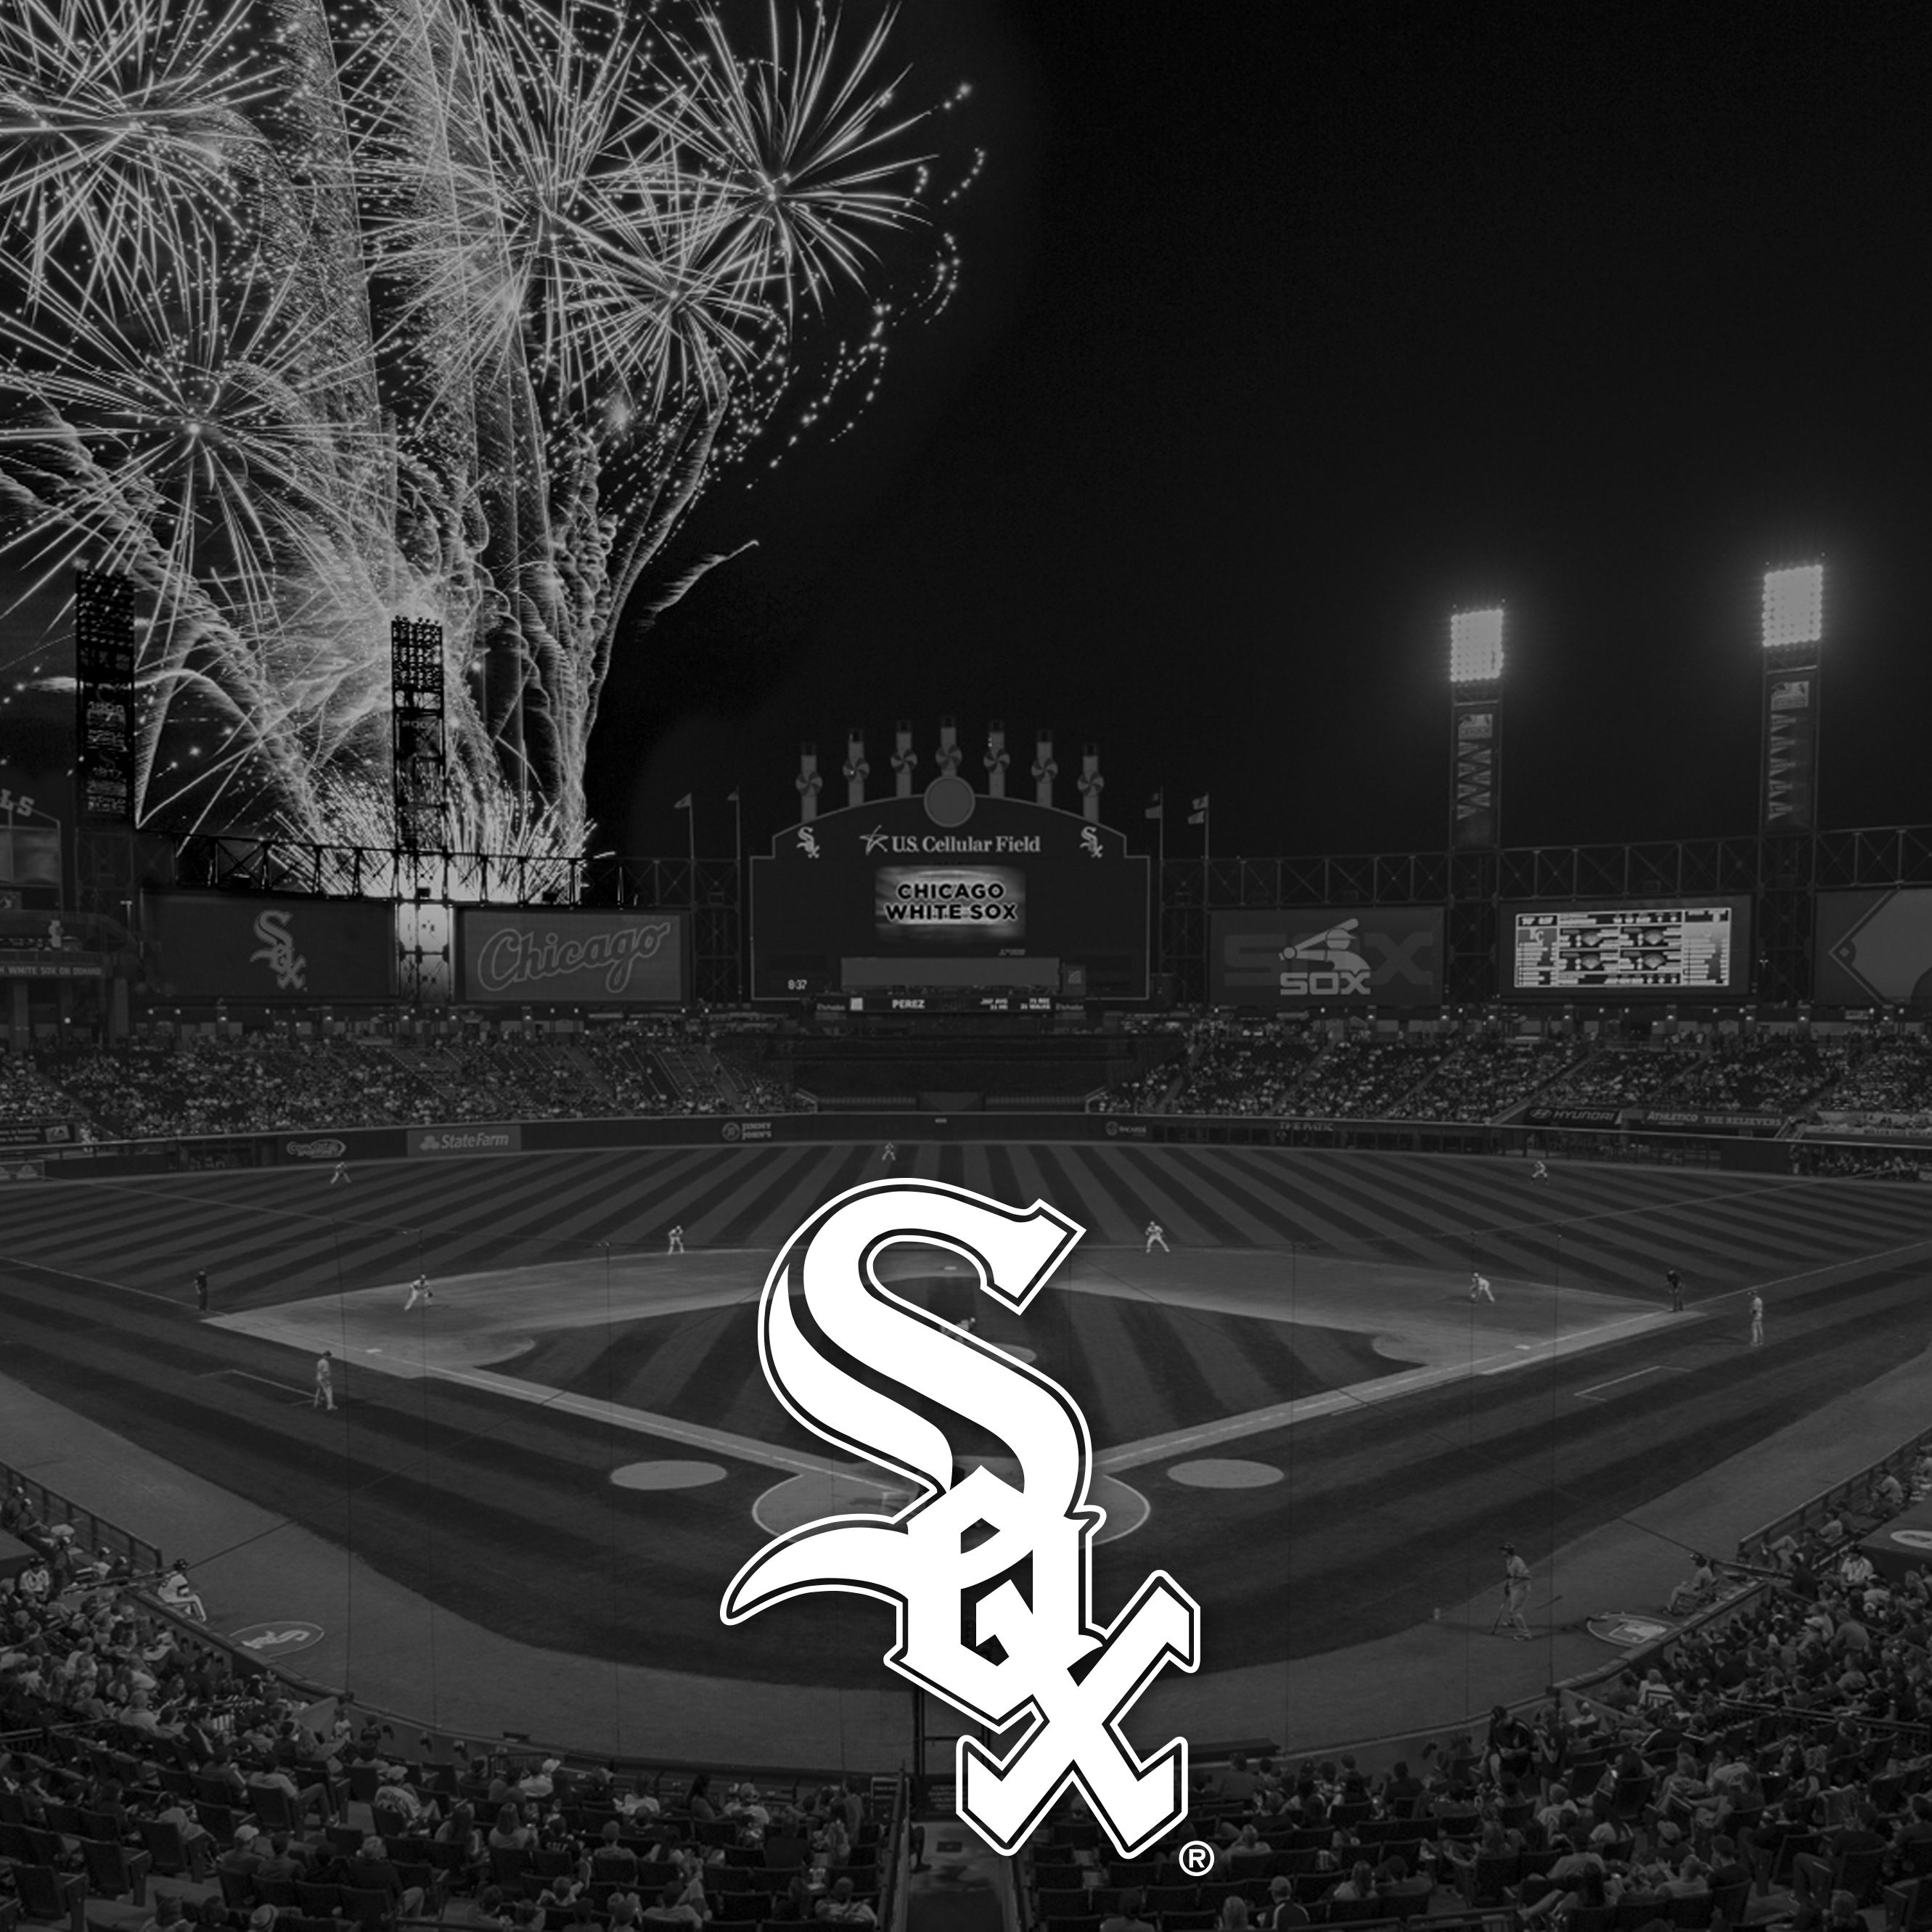 Chicago White Sox Wallpapers Group 64 2662x2662